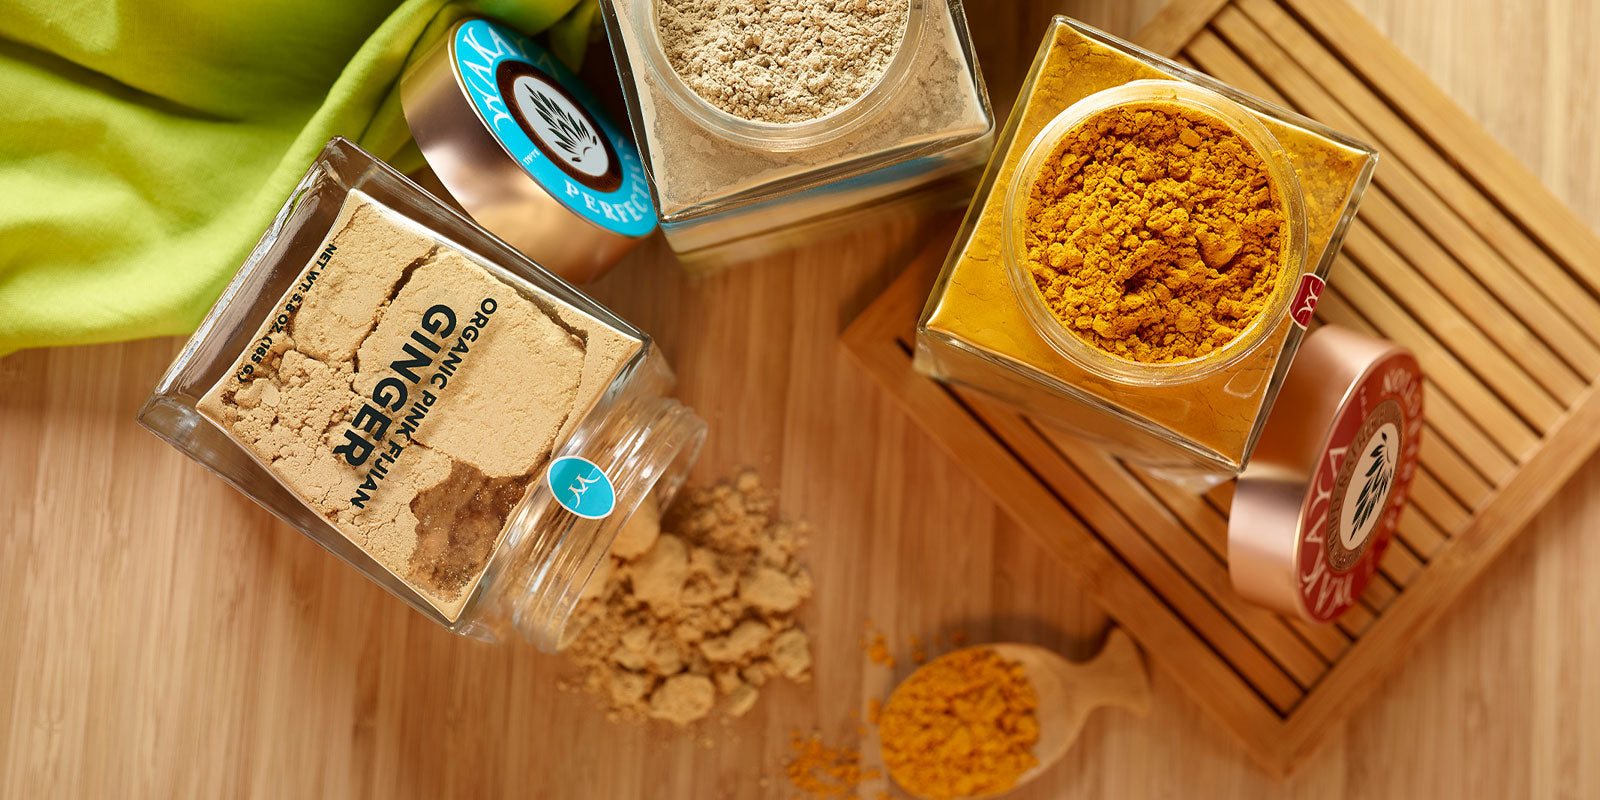 Ginger & Turmeric Powder